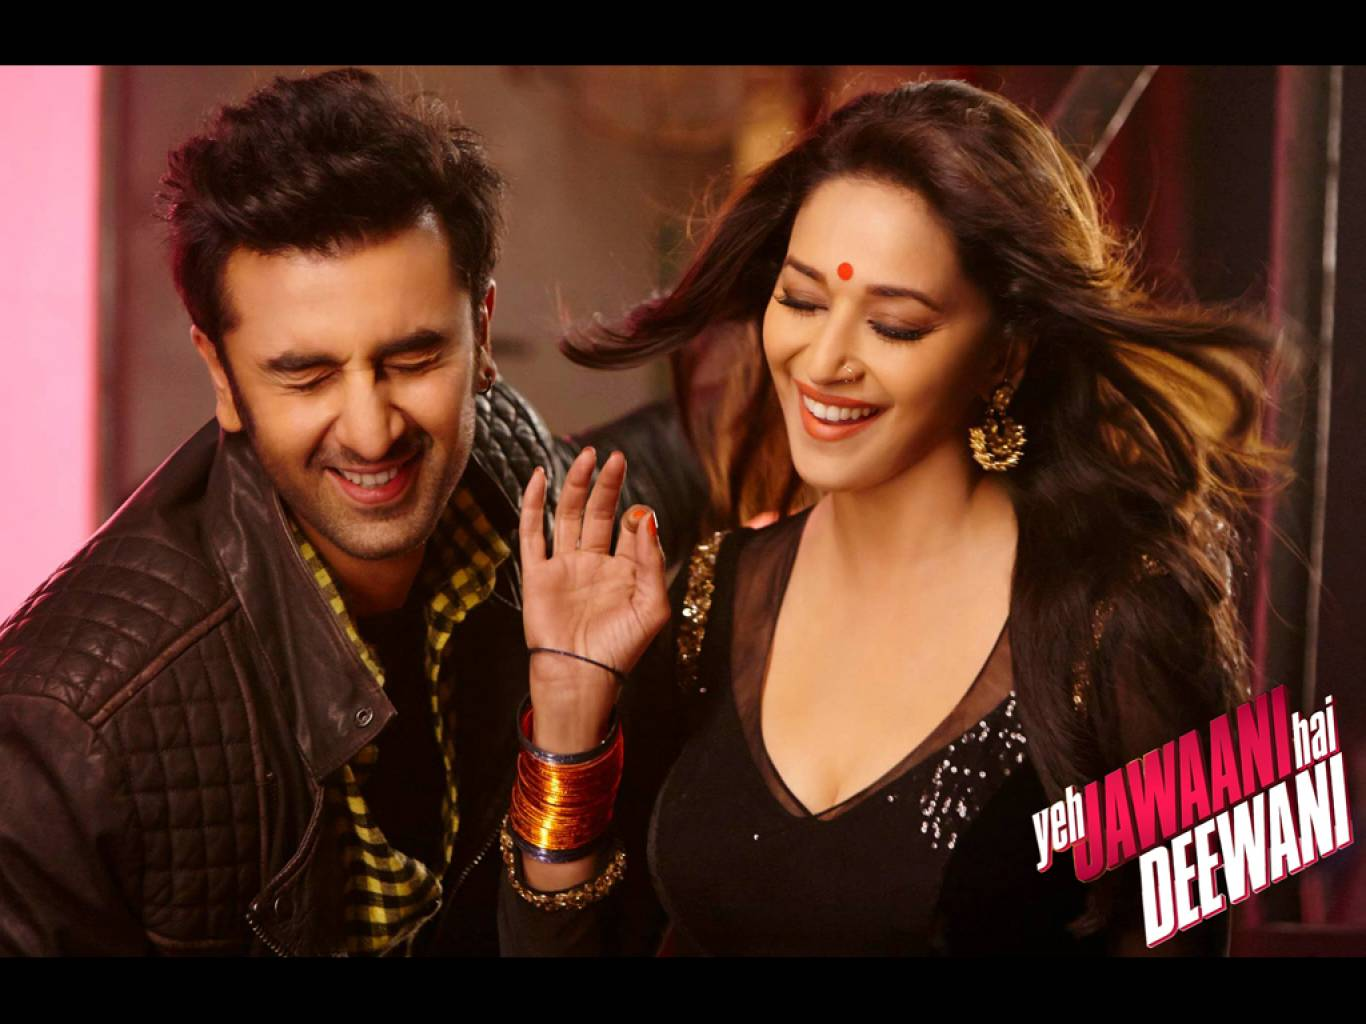 Yeh Jawaani Hai Deewani Wallpapers